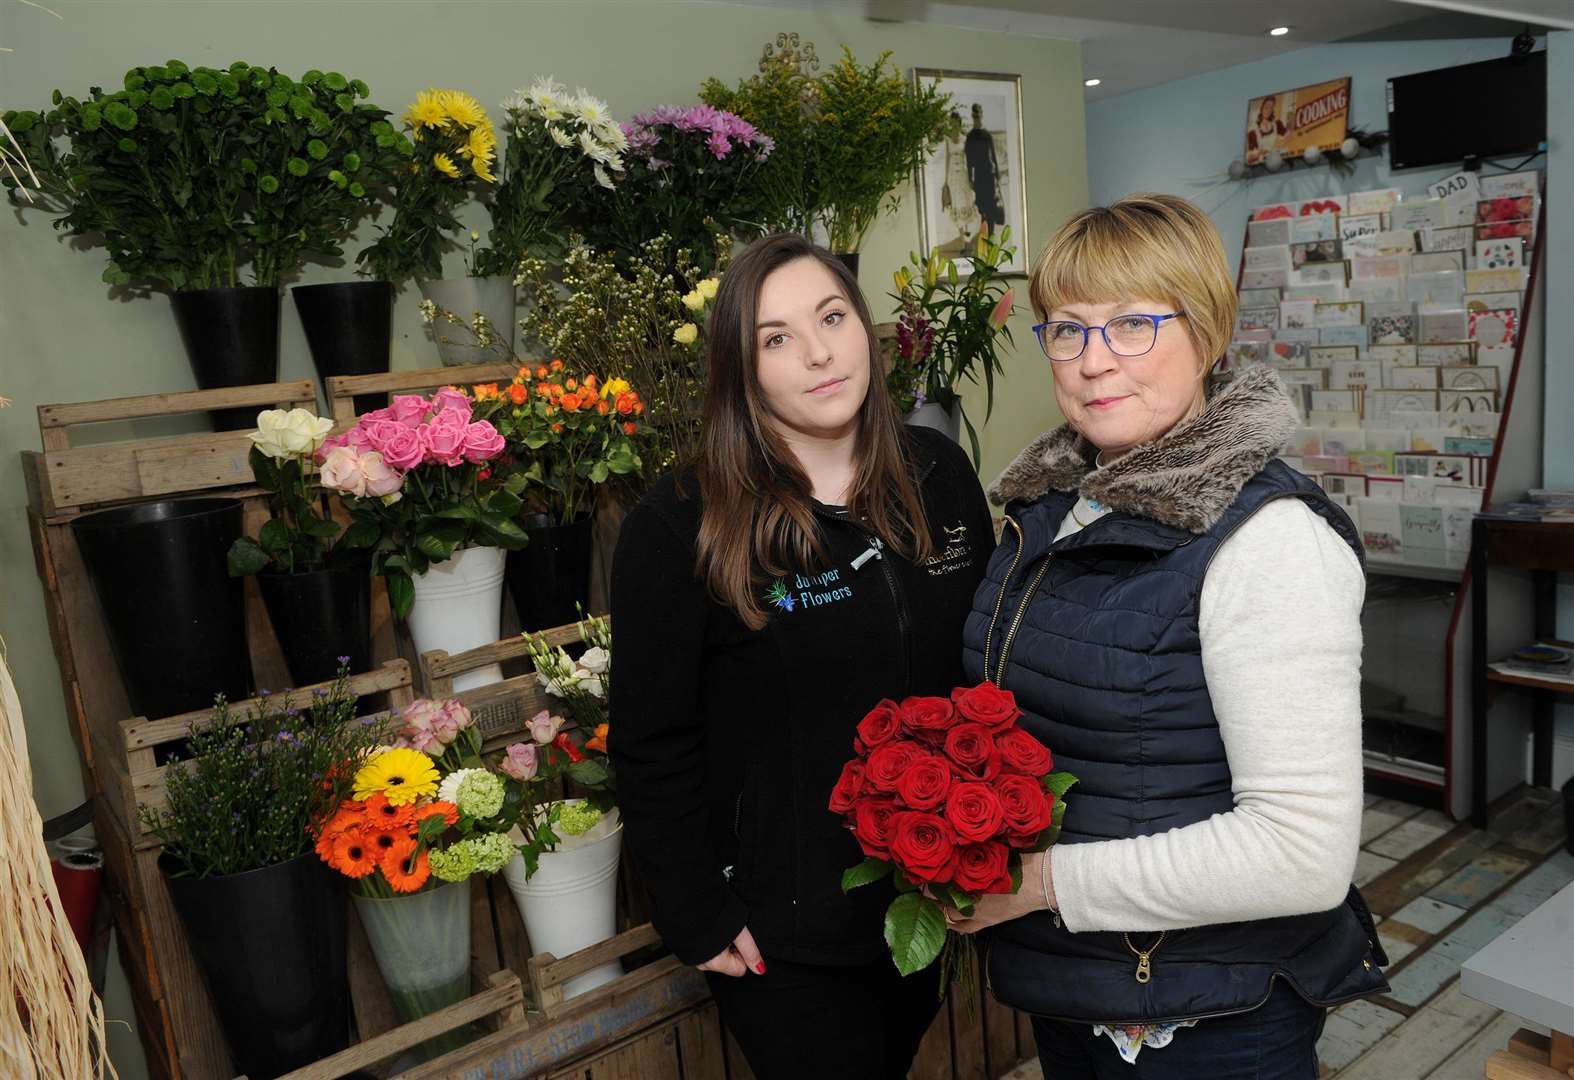 Sudbury florist dealt setback after 200 roses stolen from shop